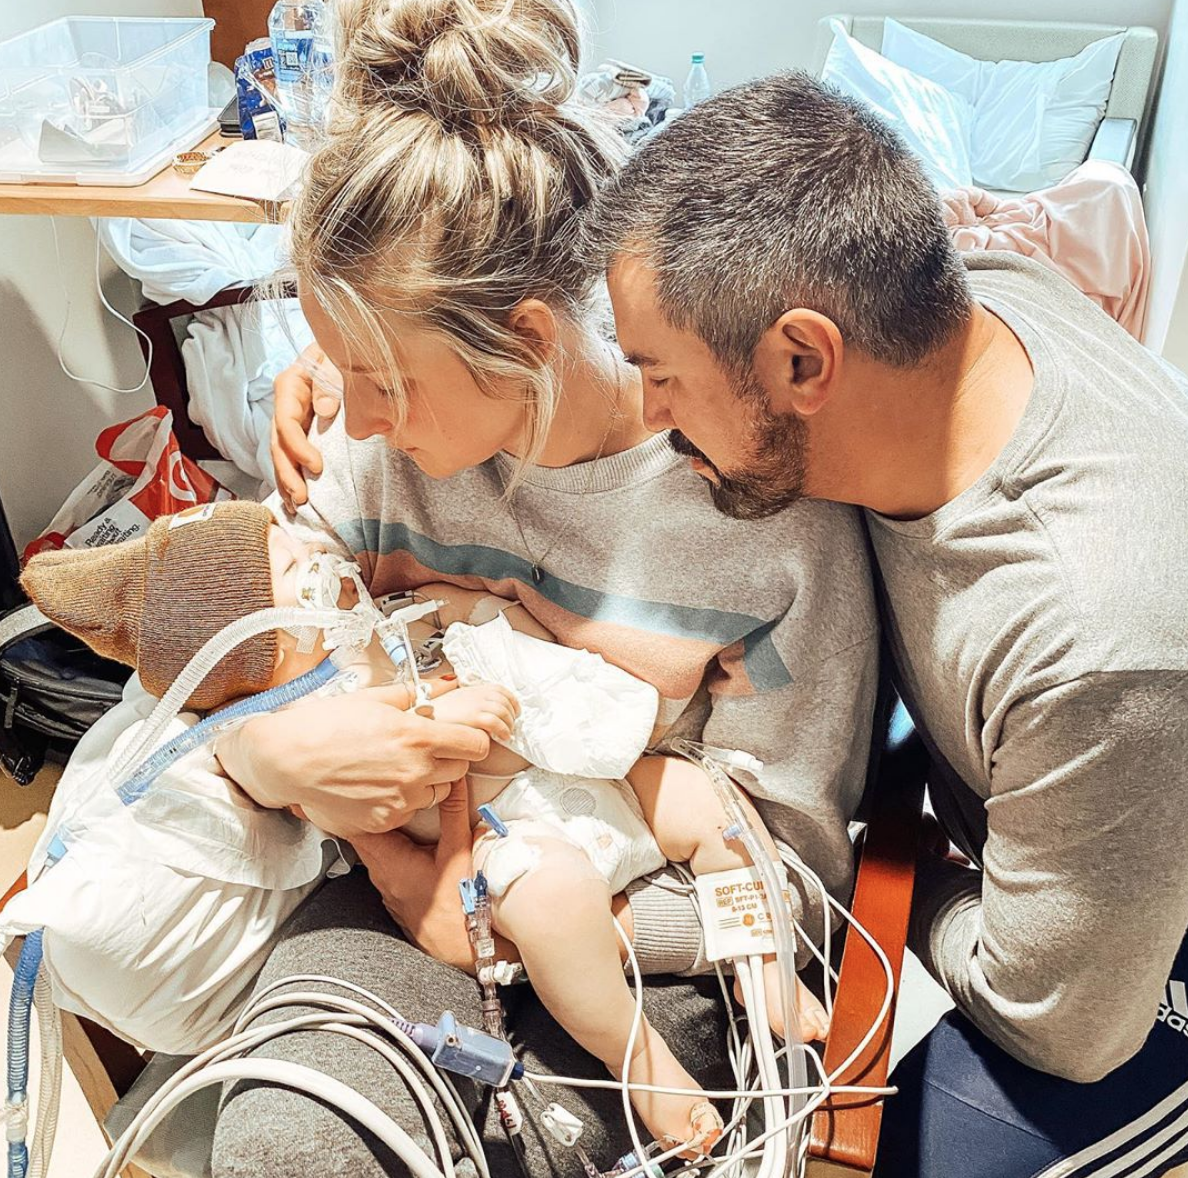 Youtube star Brittani Boren Leach shares story of baby's death to inspire others_2